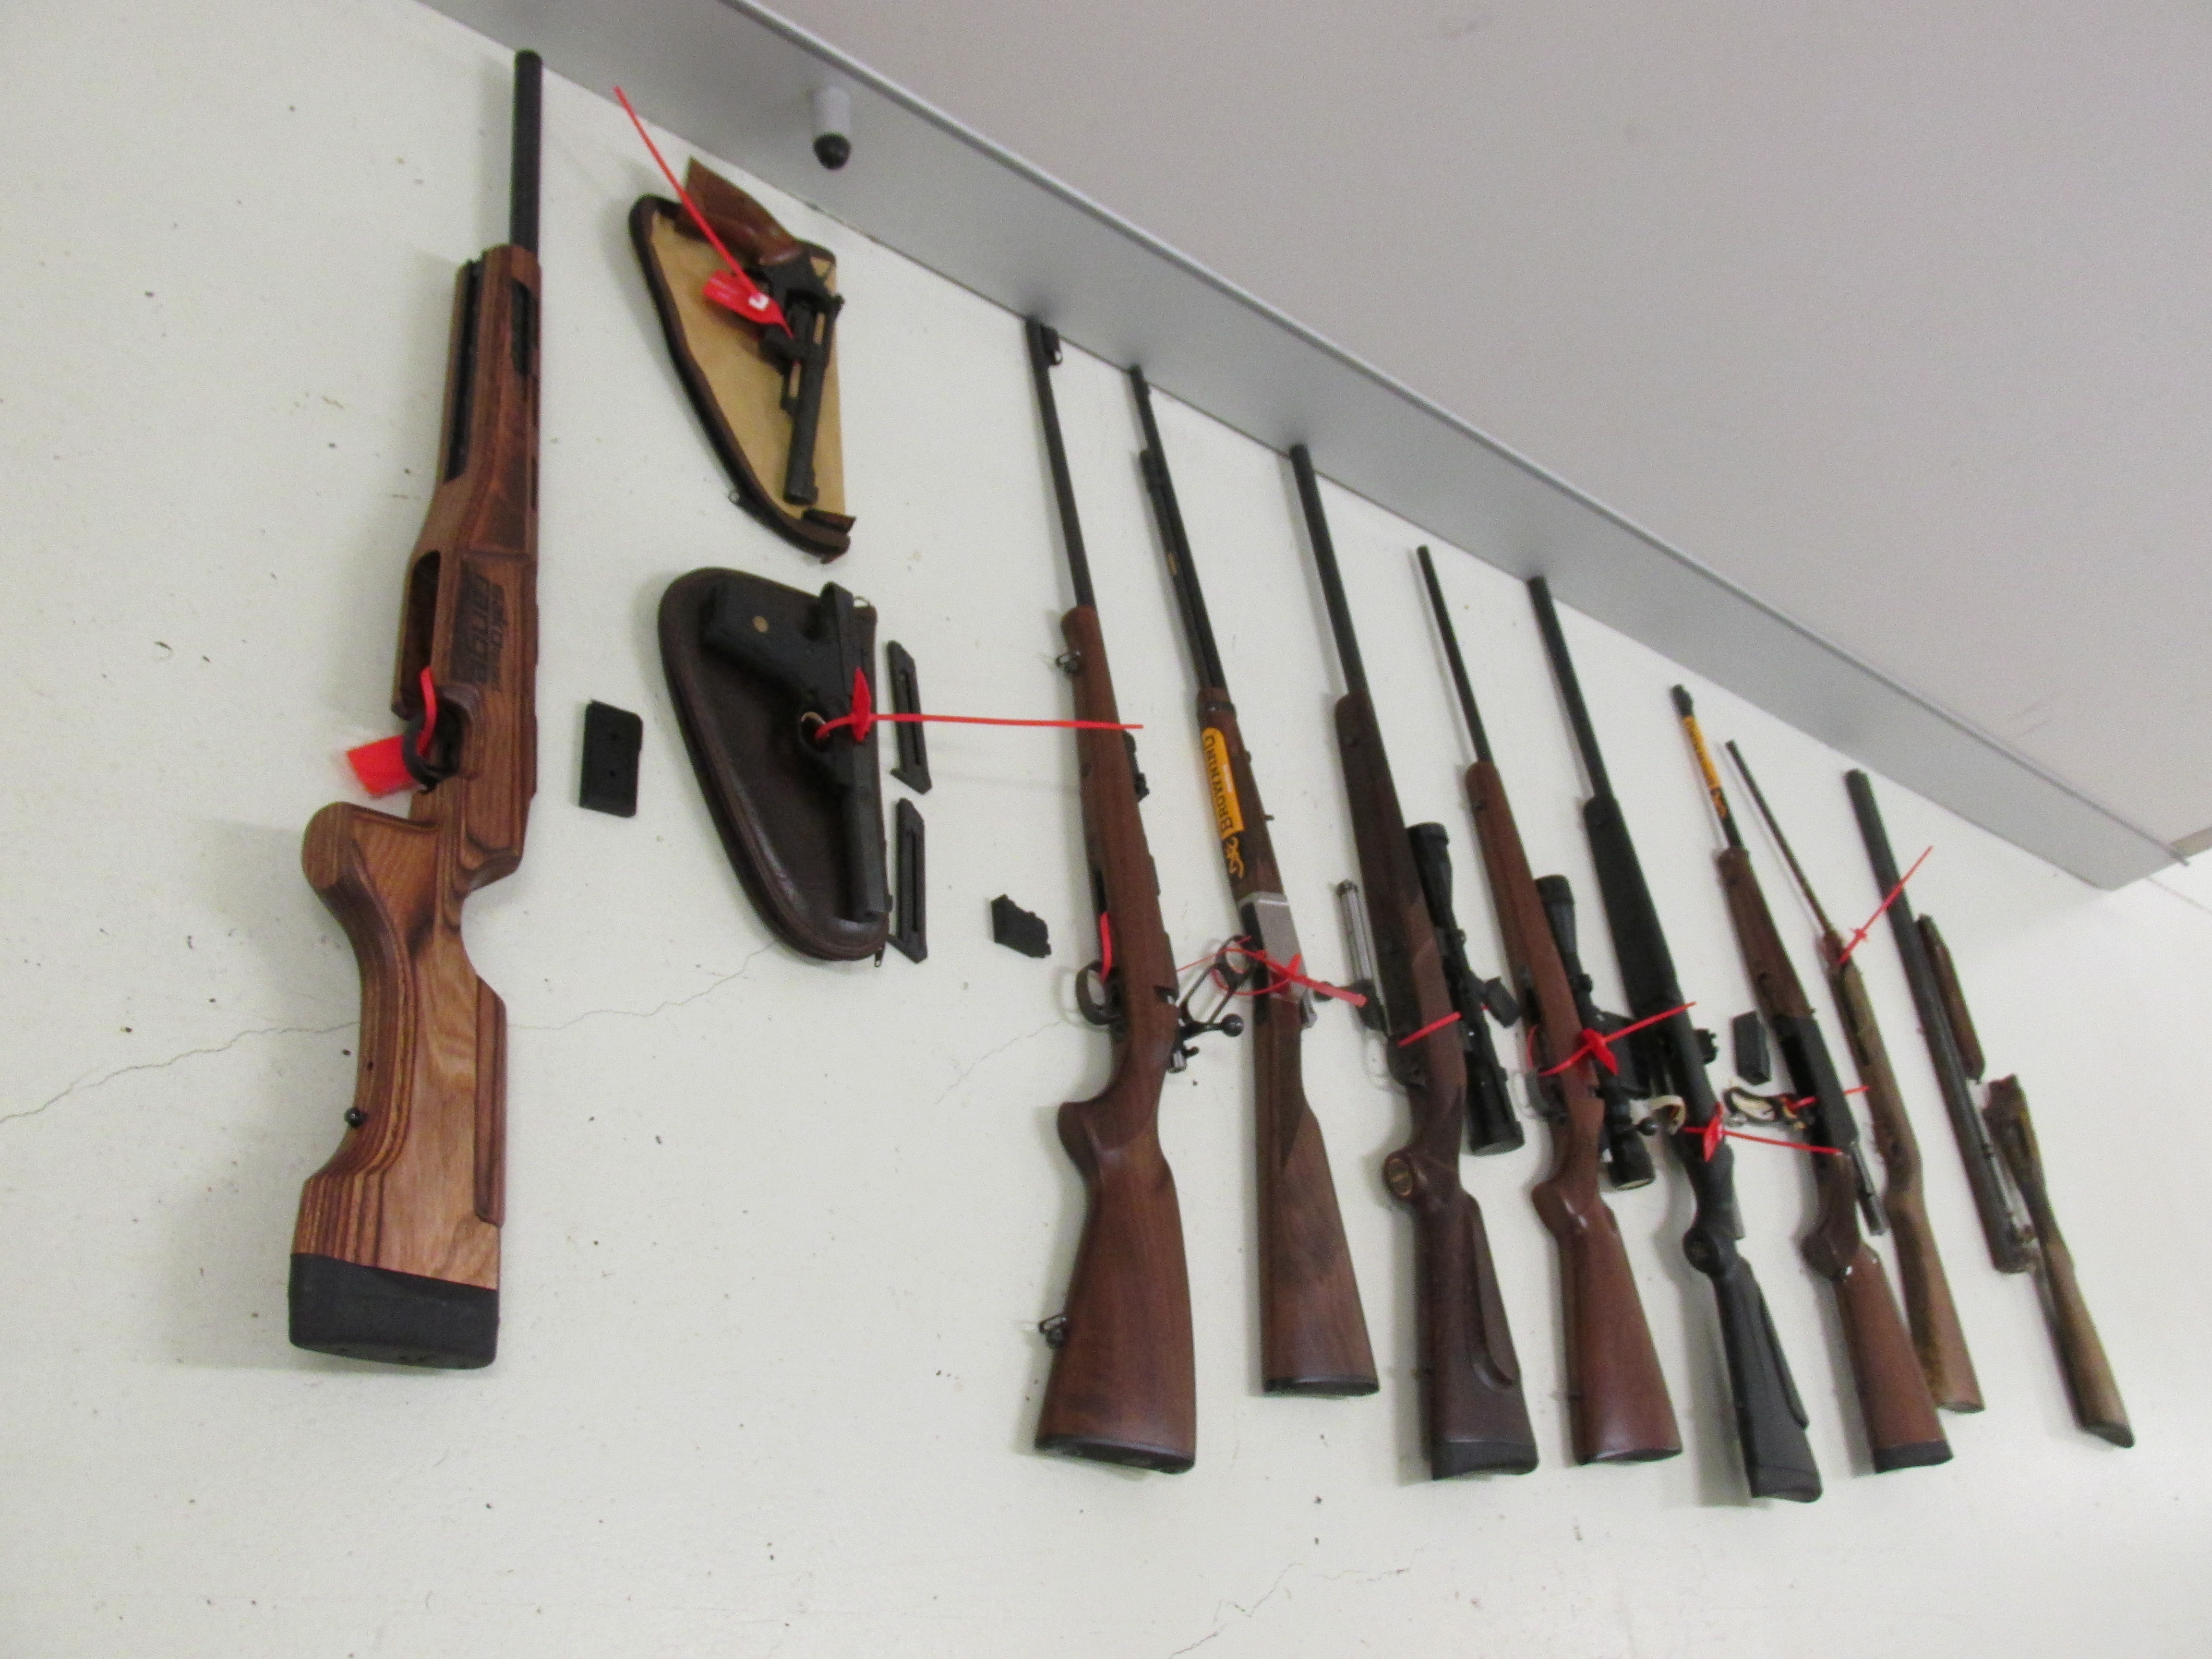 Seven rifles, a revolver, a pistol, a double barrel shotgun along with in excess 3,000 rounds of ammunition and an amount of gun powder